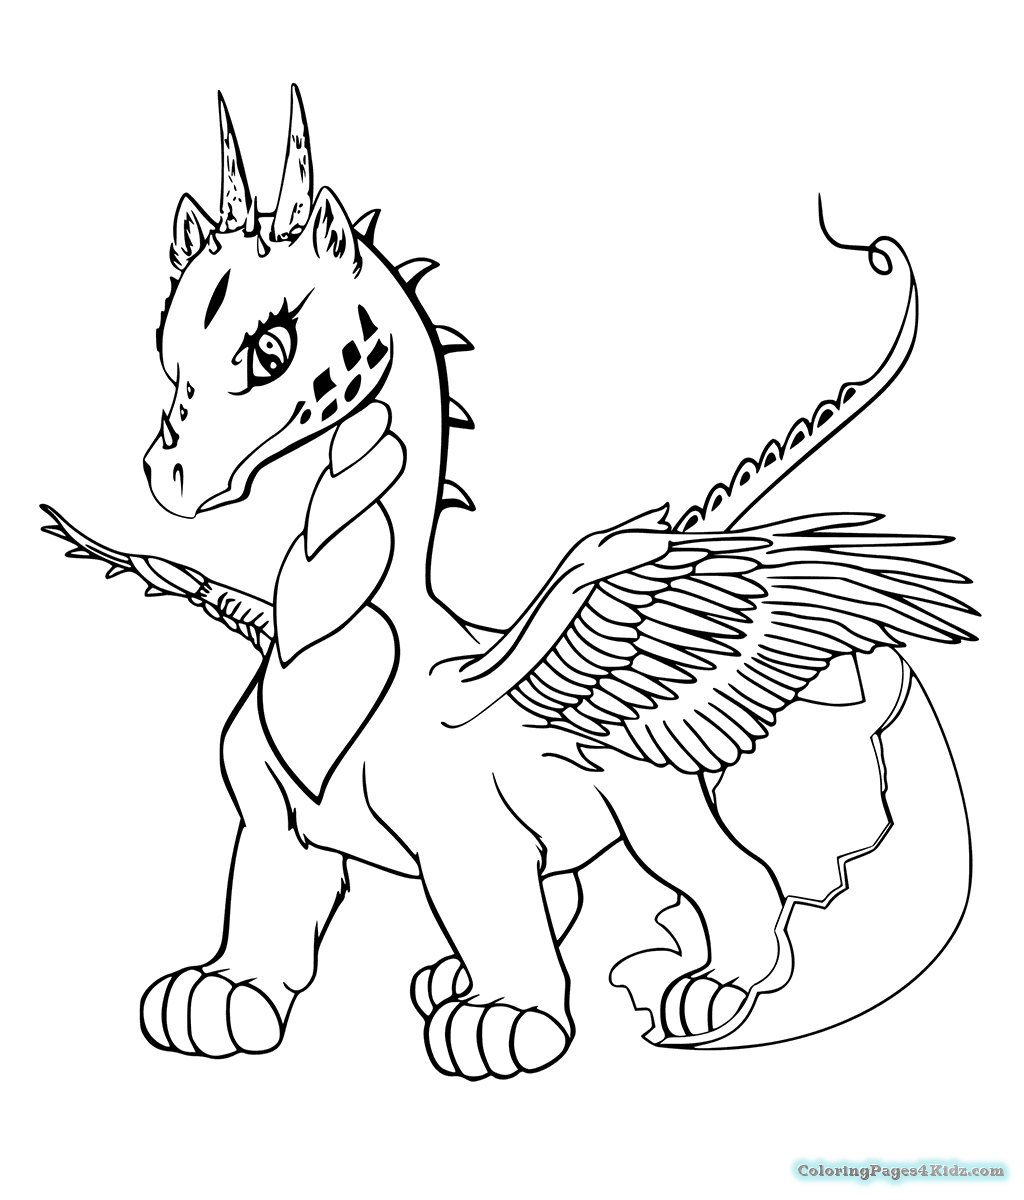 coloring pages of cute dragons baby dragon coloring pages to download and print for free of pages dragons coloring cute